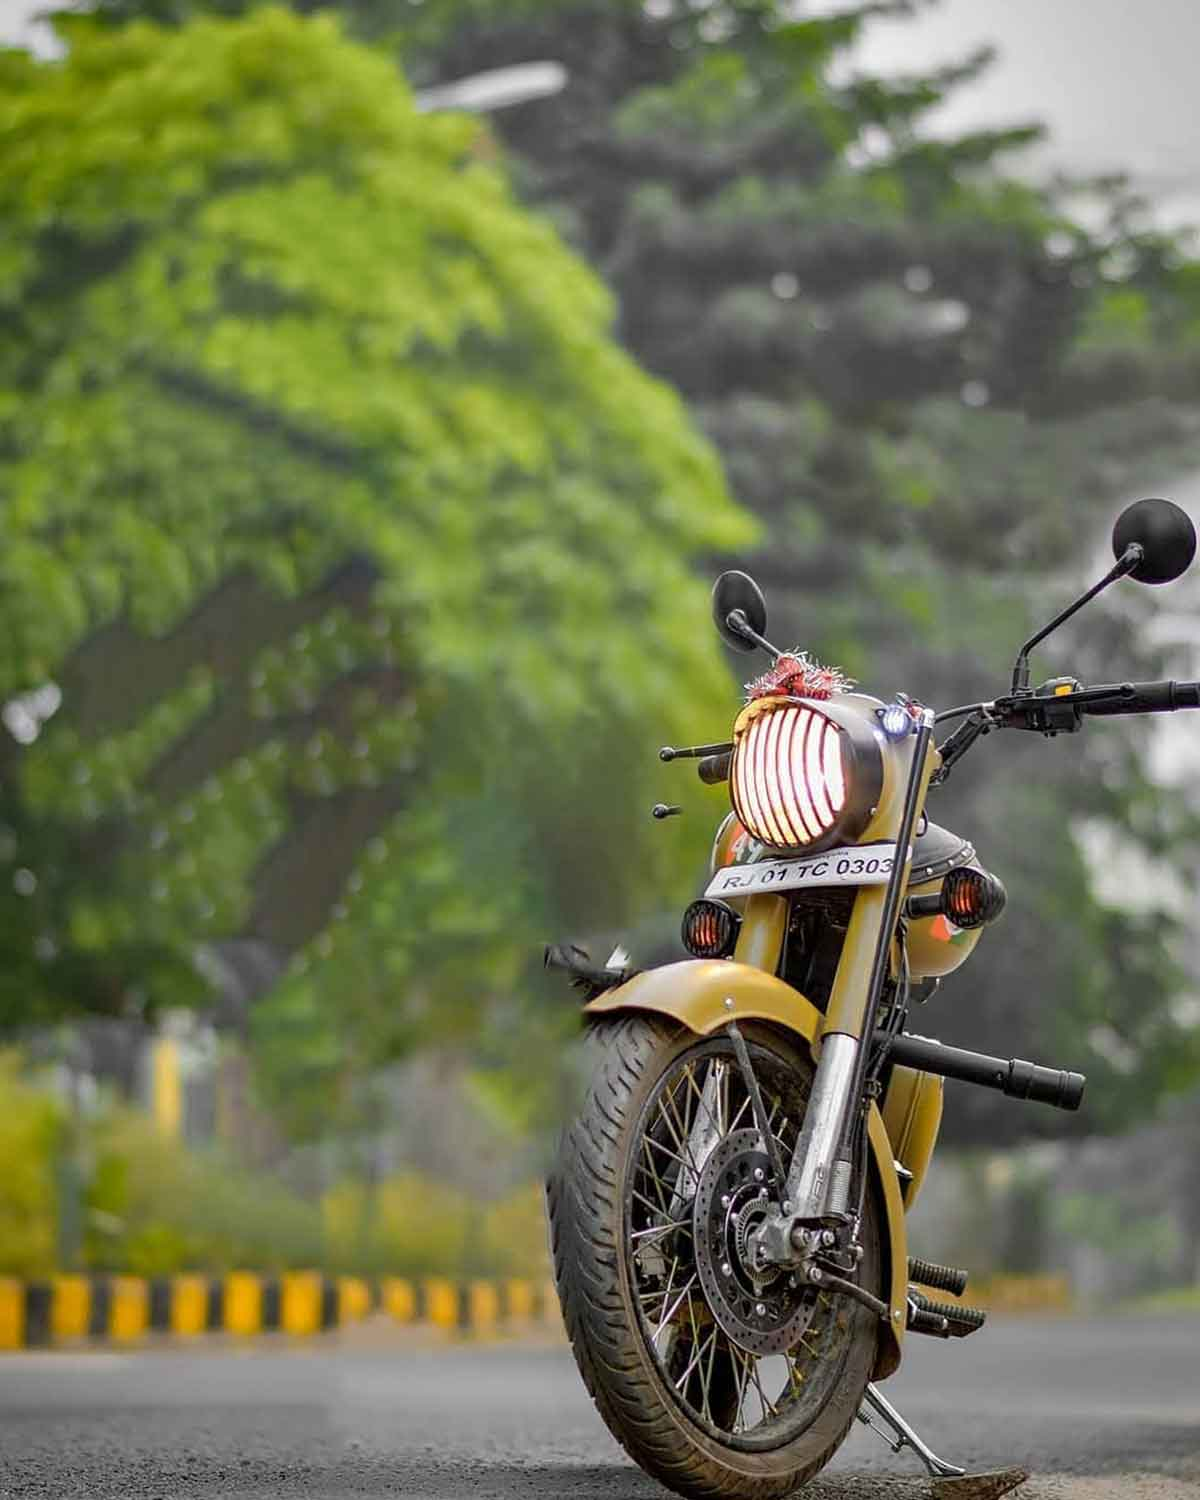 Bullet Cb Background Highway Road Free Stock Download